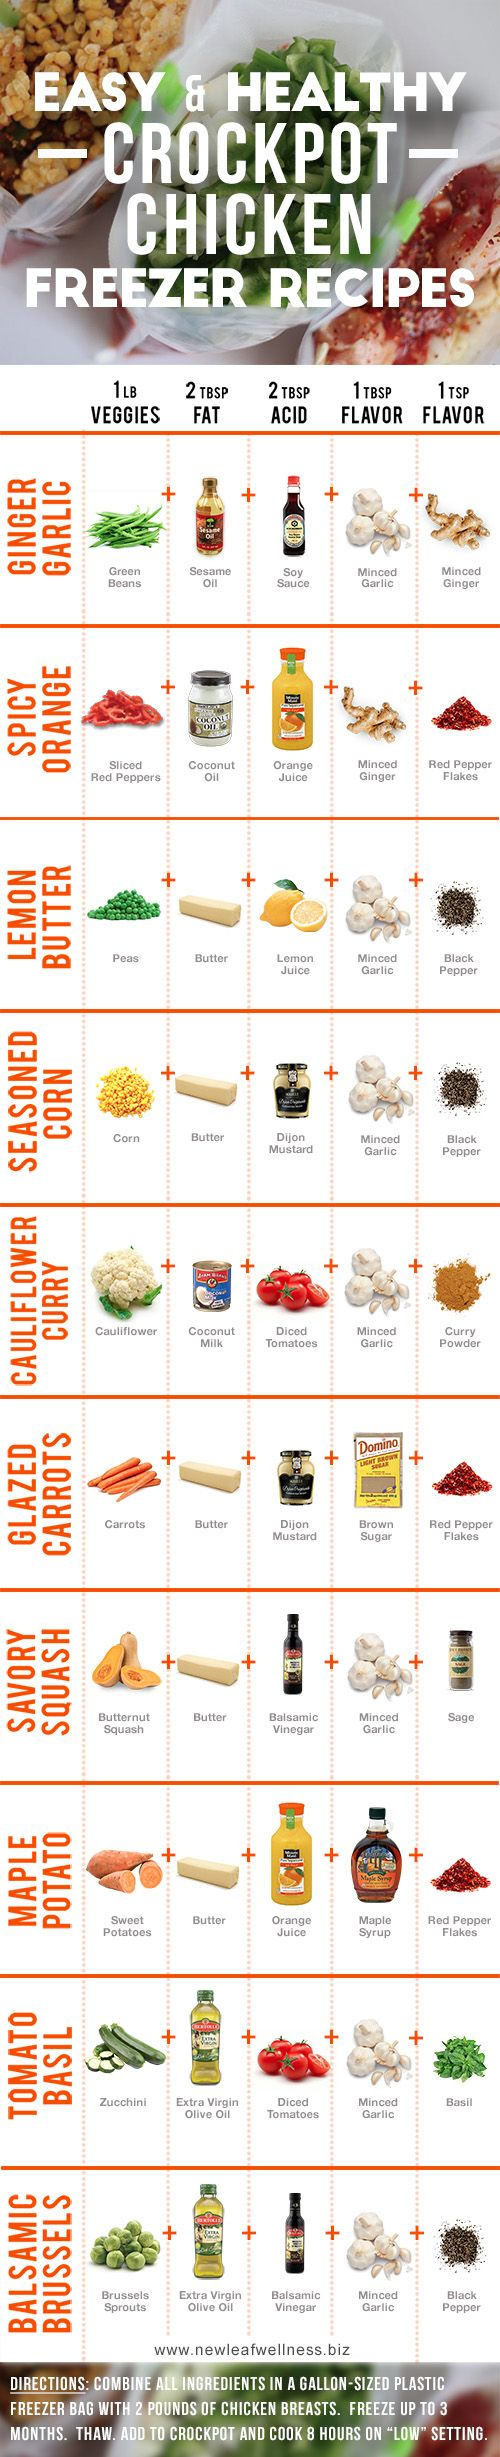 10 Easy and Healthy Crock Pot Chicken Freezer Recipes